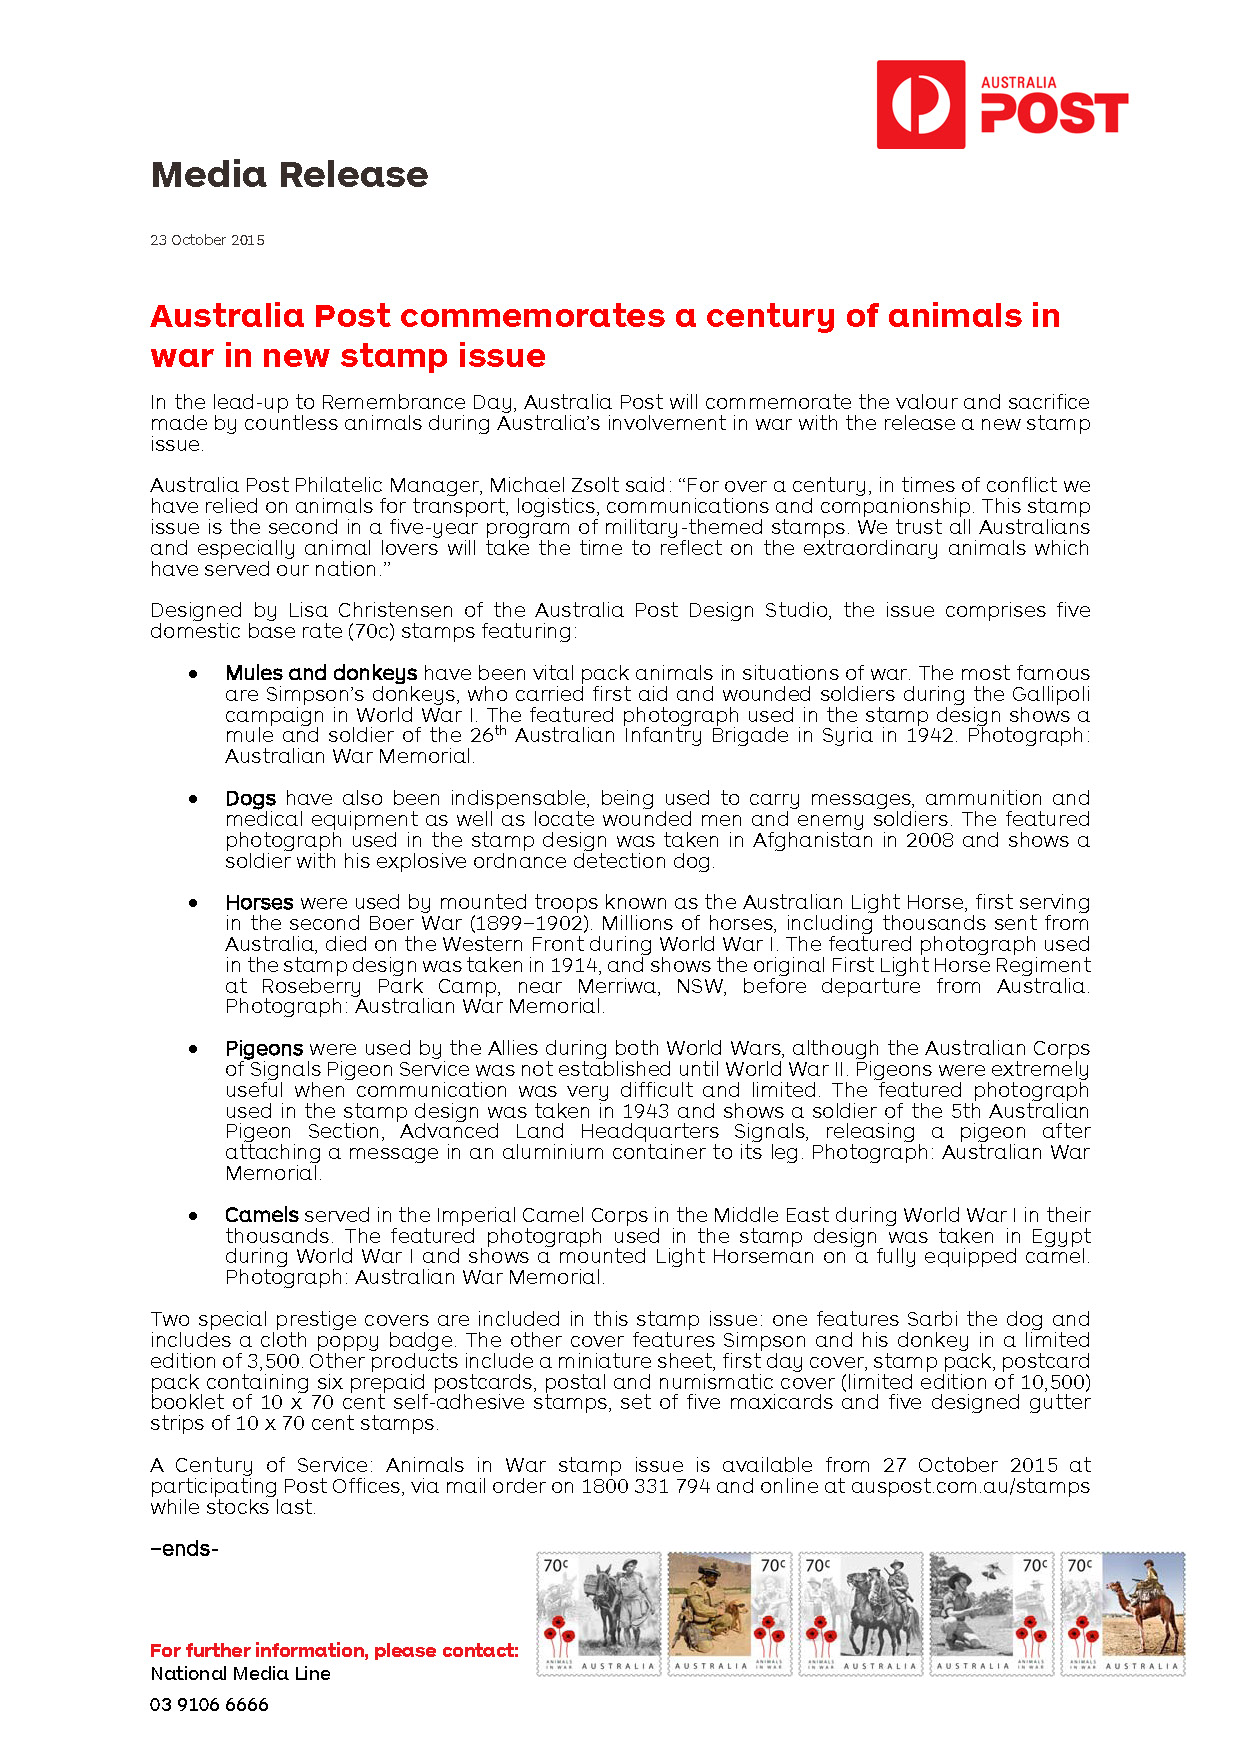 Media Release_A Century of Service - Animals in War_2015_FINAL